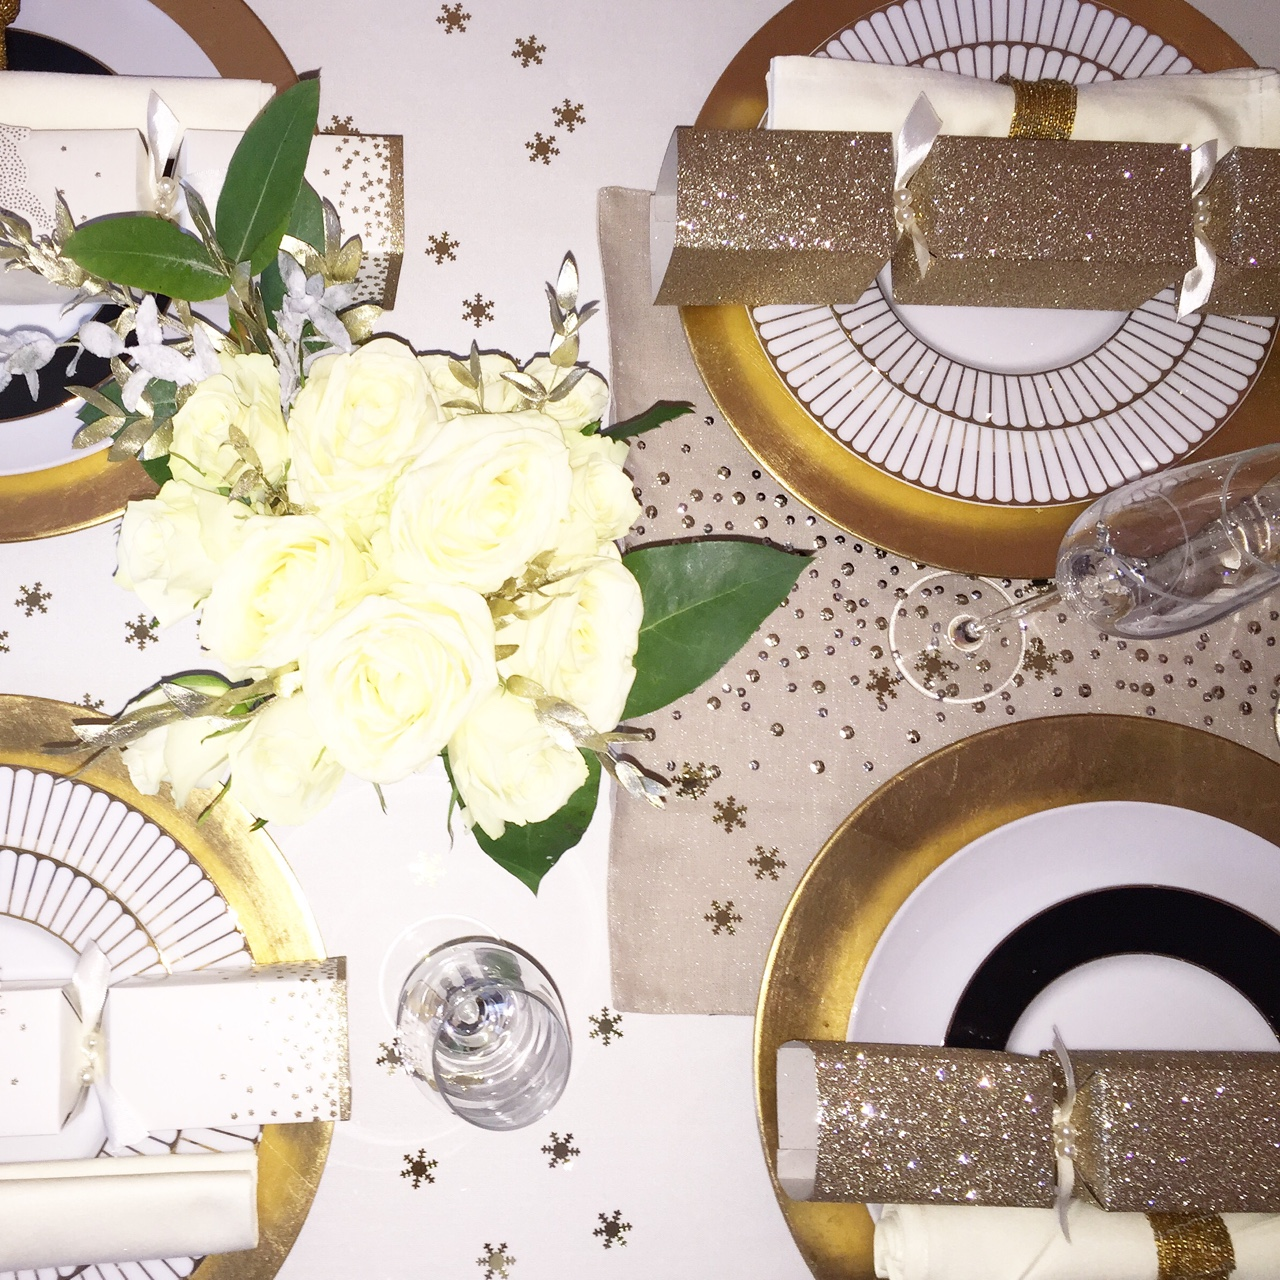 Merry Christmas Beautiful Table for Christmas Dinner- Winter White Rose's & Gold Accessories. //SHE